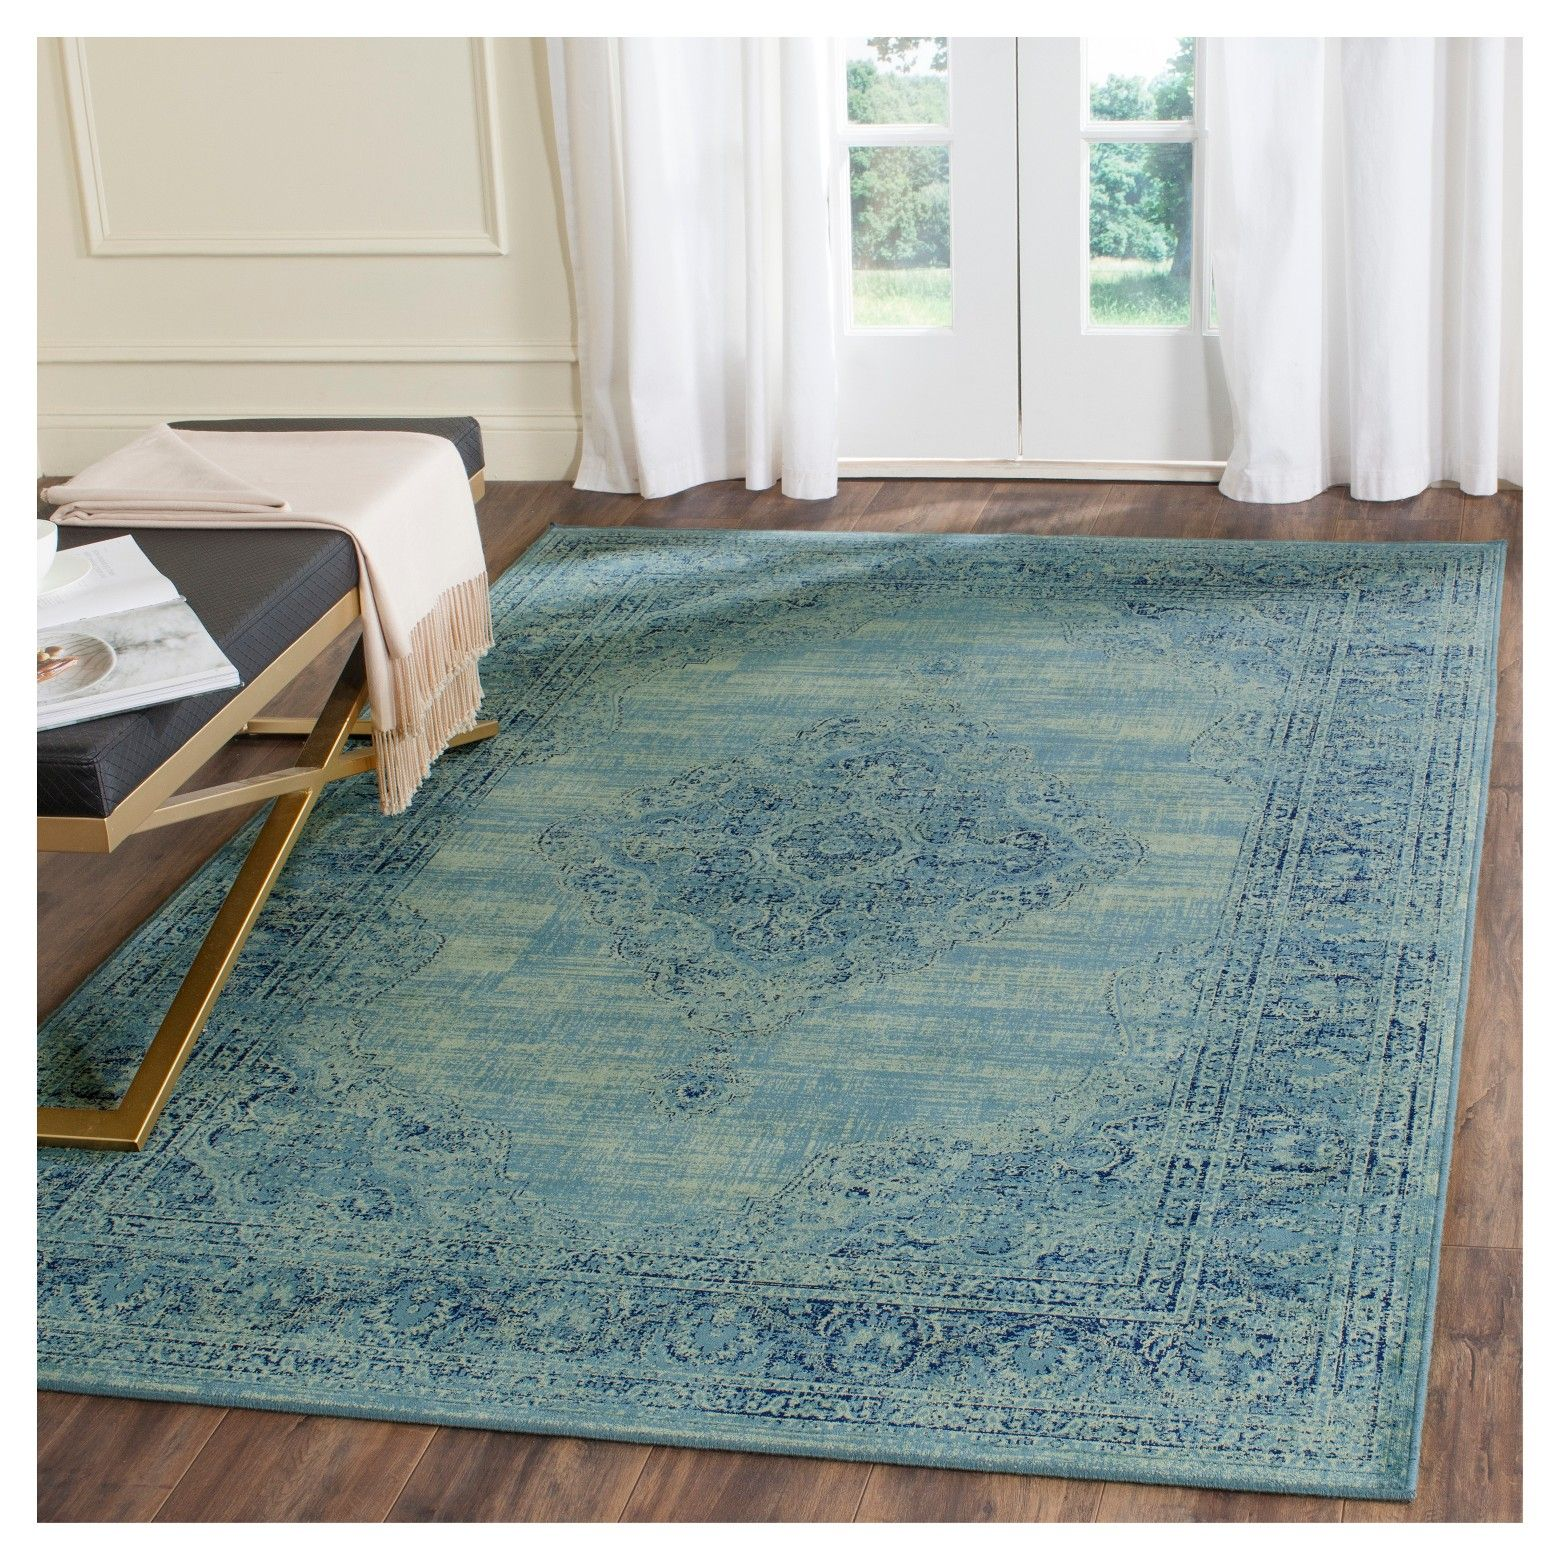 For The Look Of An Instant Distressed Accent Rug That Won T Show